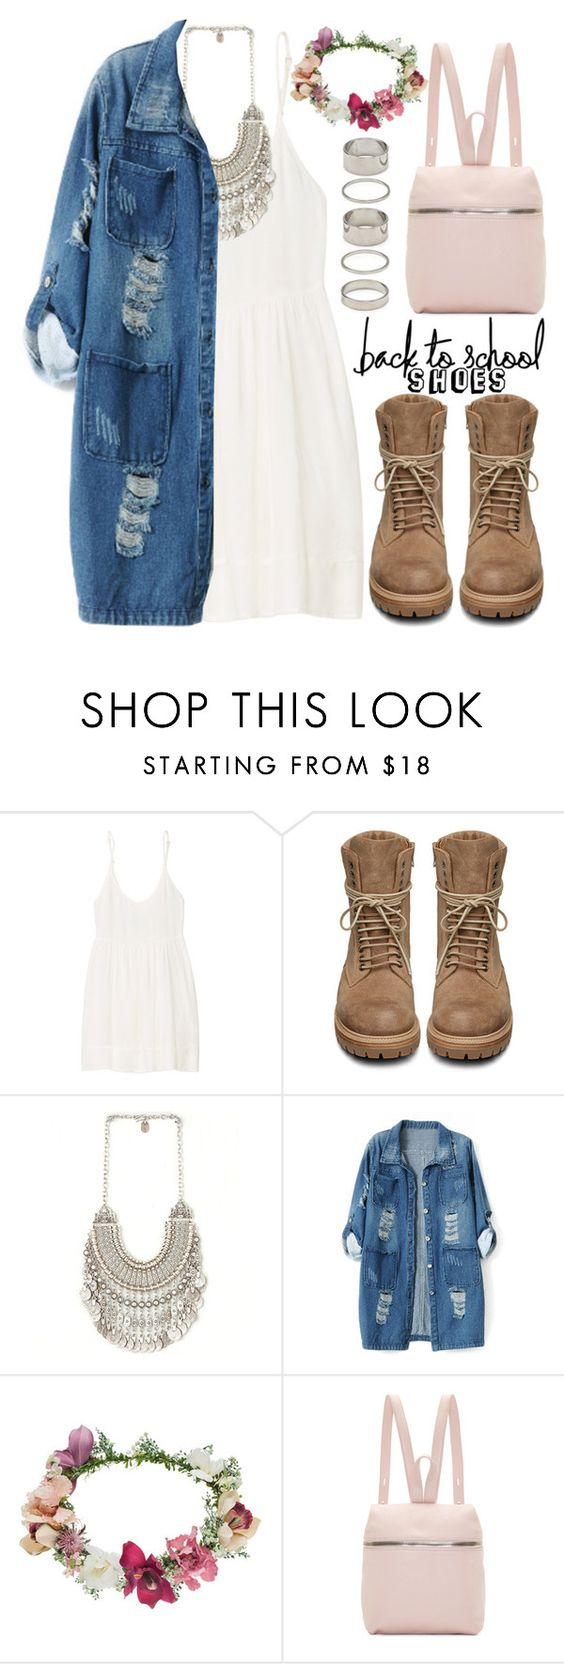 """895."" by asoul4 ❤ liked on Polyvore featuring TNA, Rick Owens, Chicnova Fashion, Topshop, Kara, Forever 21 and BackToSchool"